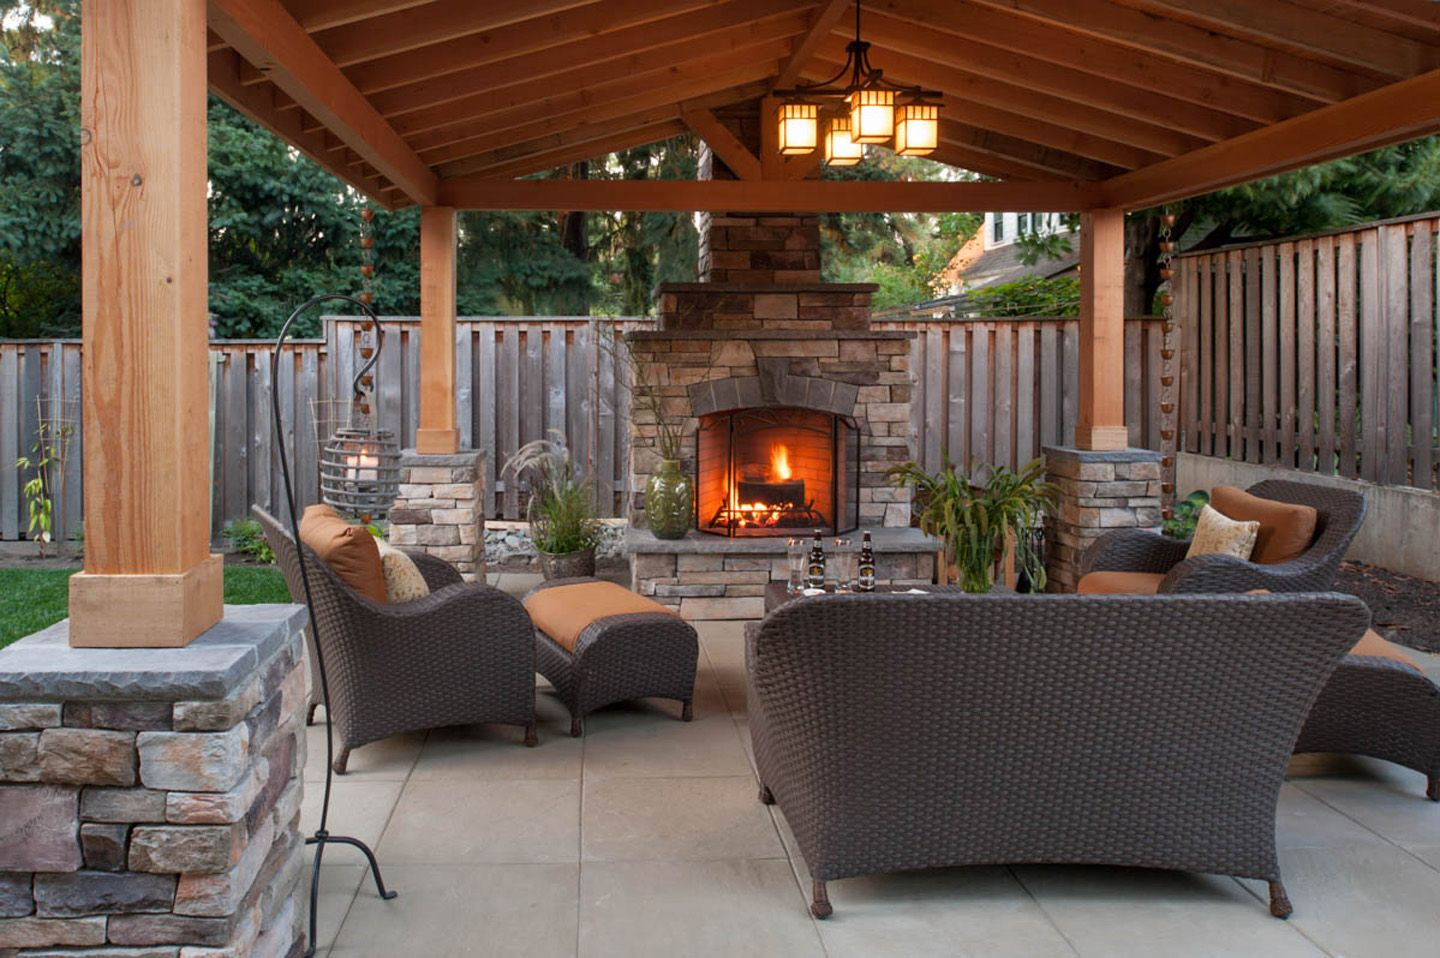 Simple Outdoor Fireplace Design in 2020 | Outdoor ... on Simple Backyard Patio Designs id=51936